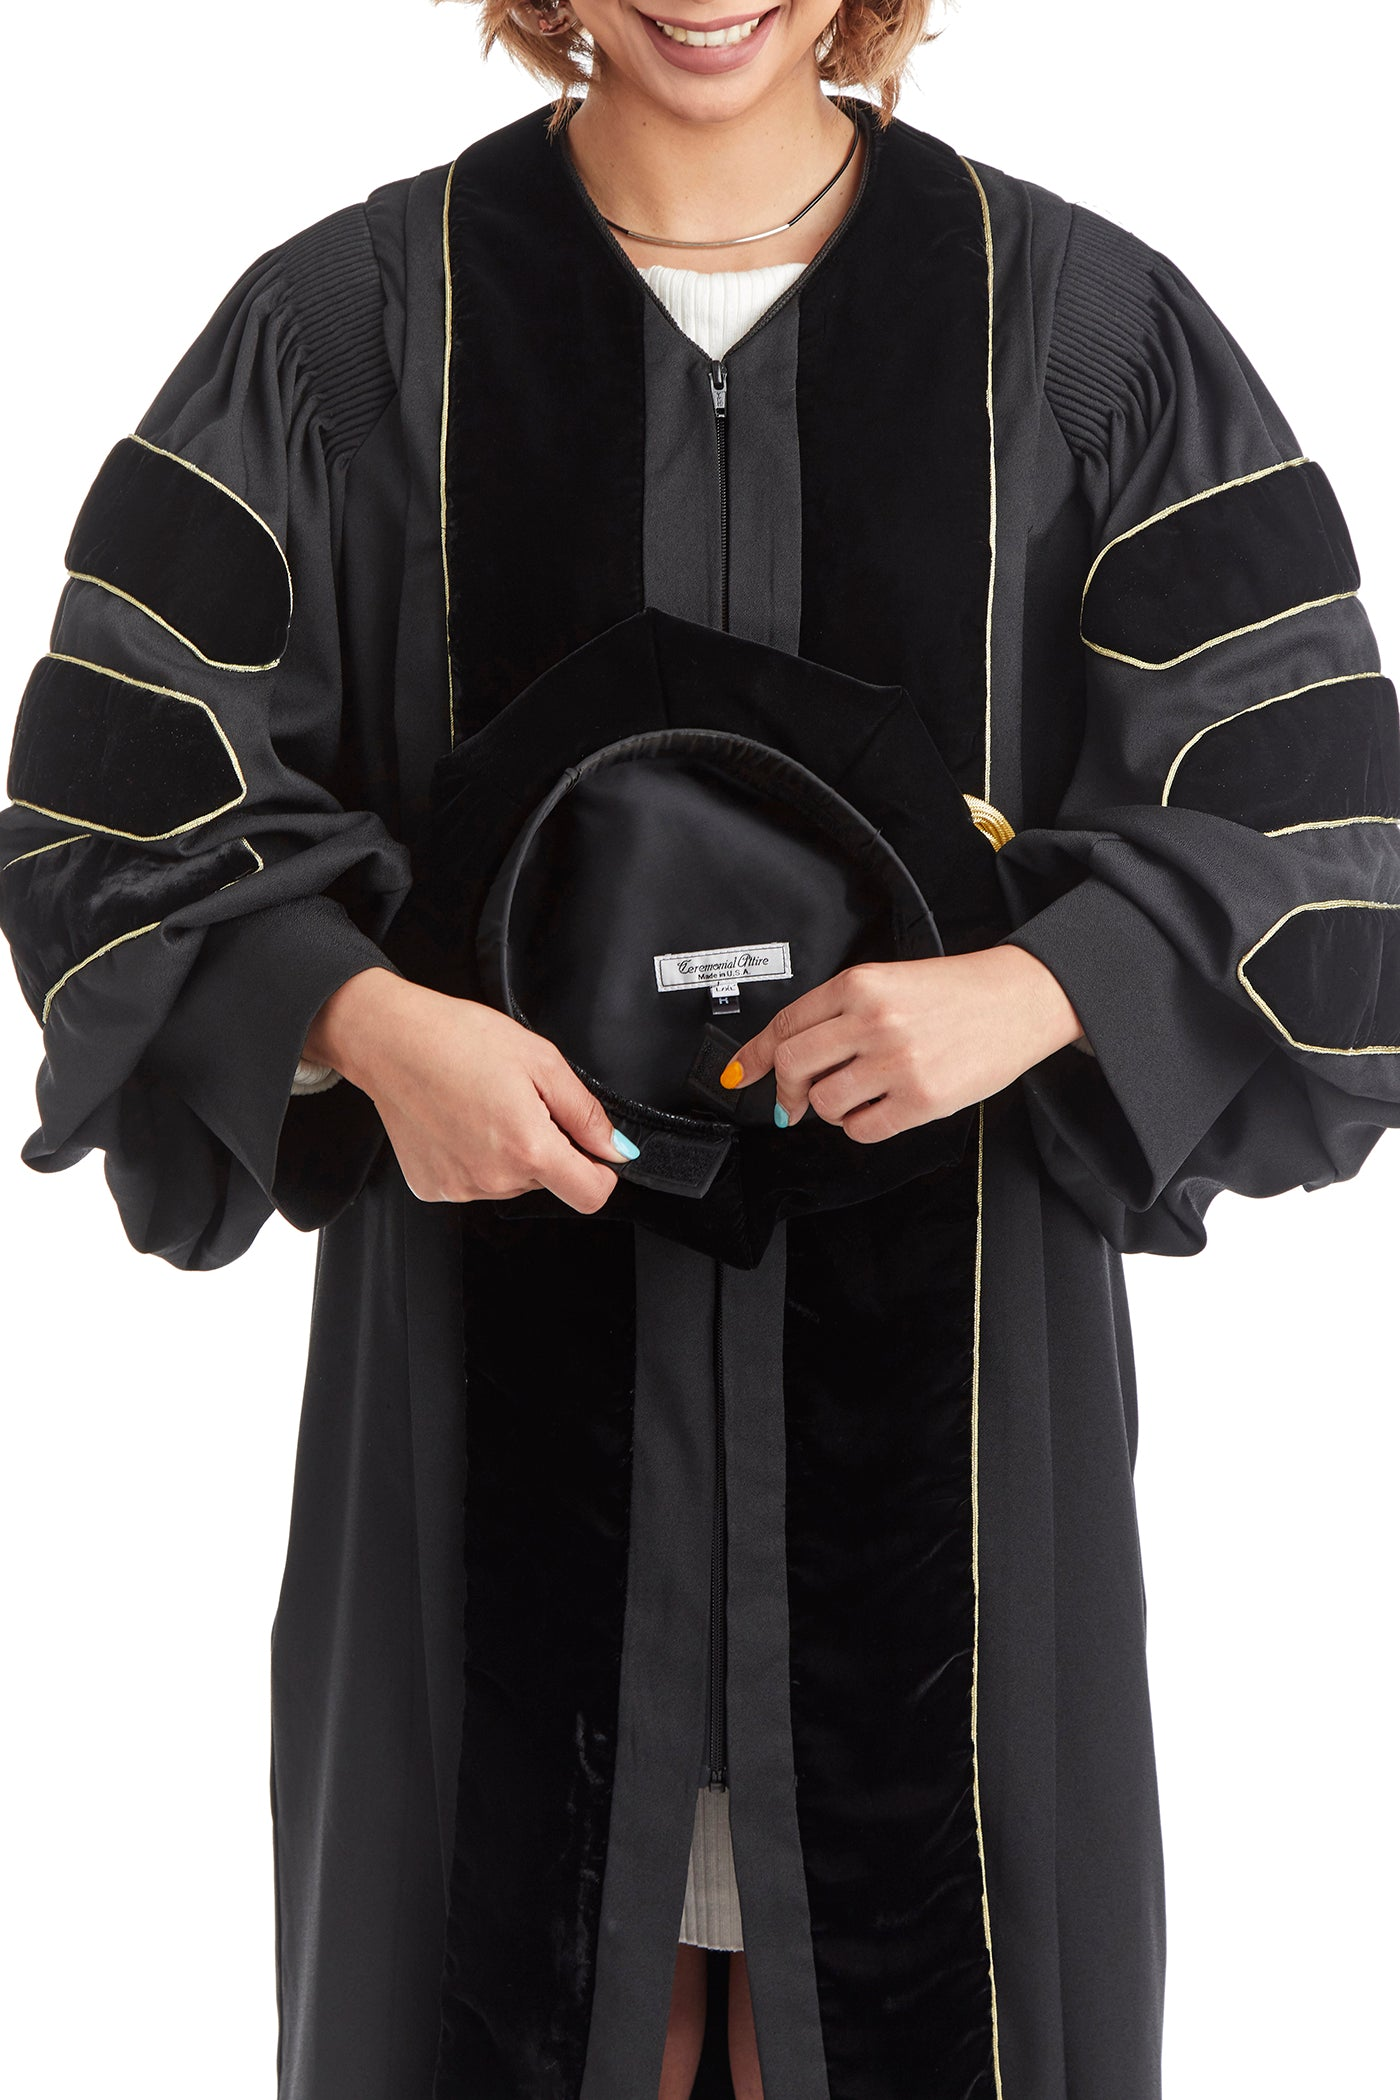 Doctoral Tam for US Military Academy Graduation - 8-sided with tassel and adjustable velcro